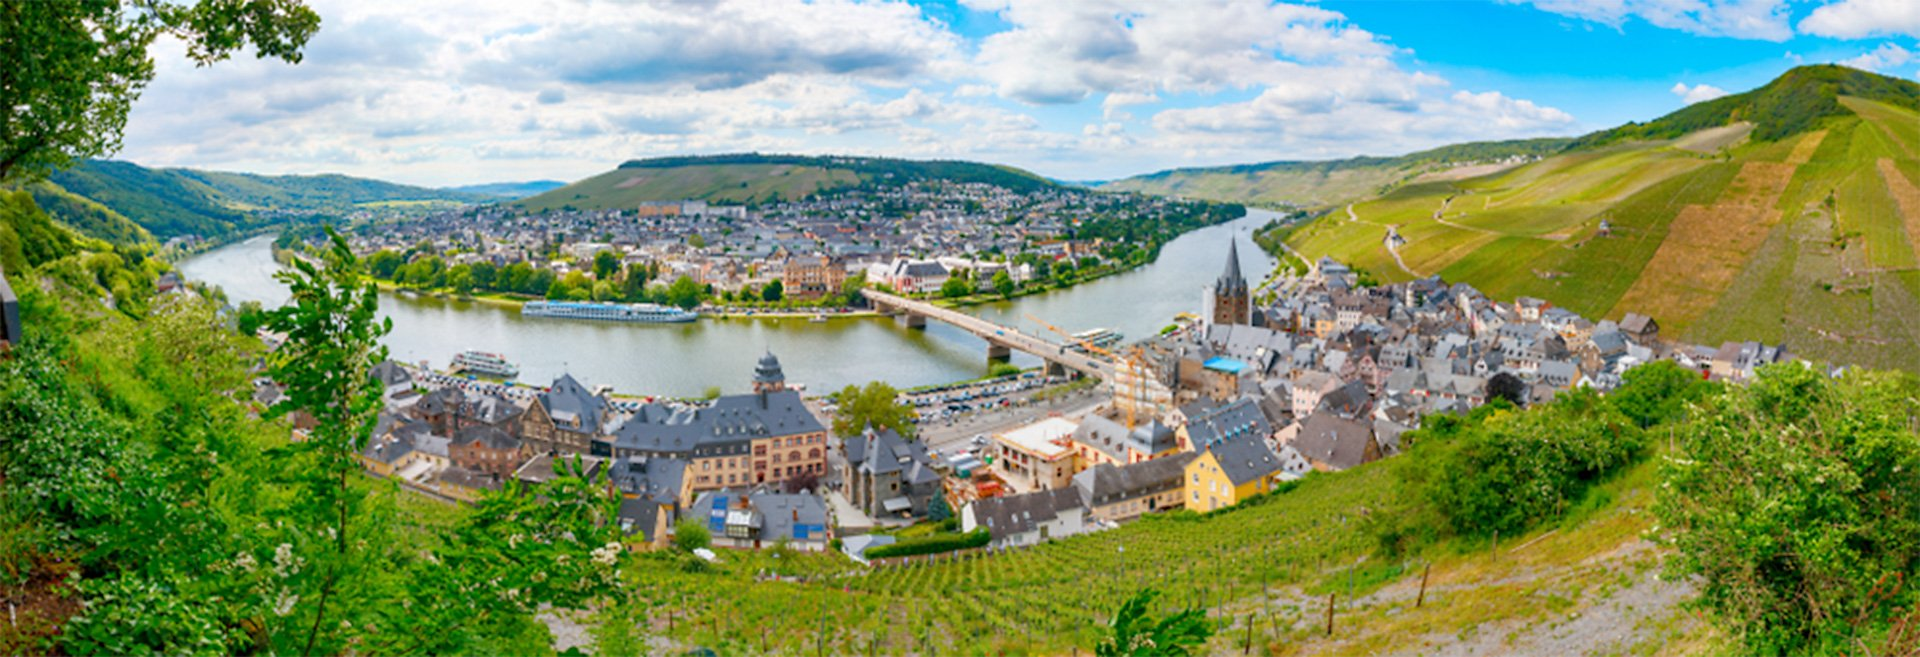 Panoramic view of Bernkastel-Kues and the Moselle river with the surrounding vineyards of the Moselle-valley on a sunny afternoon